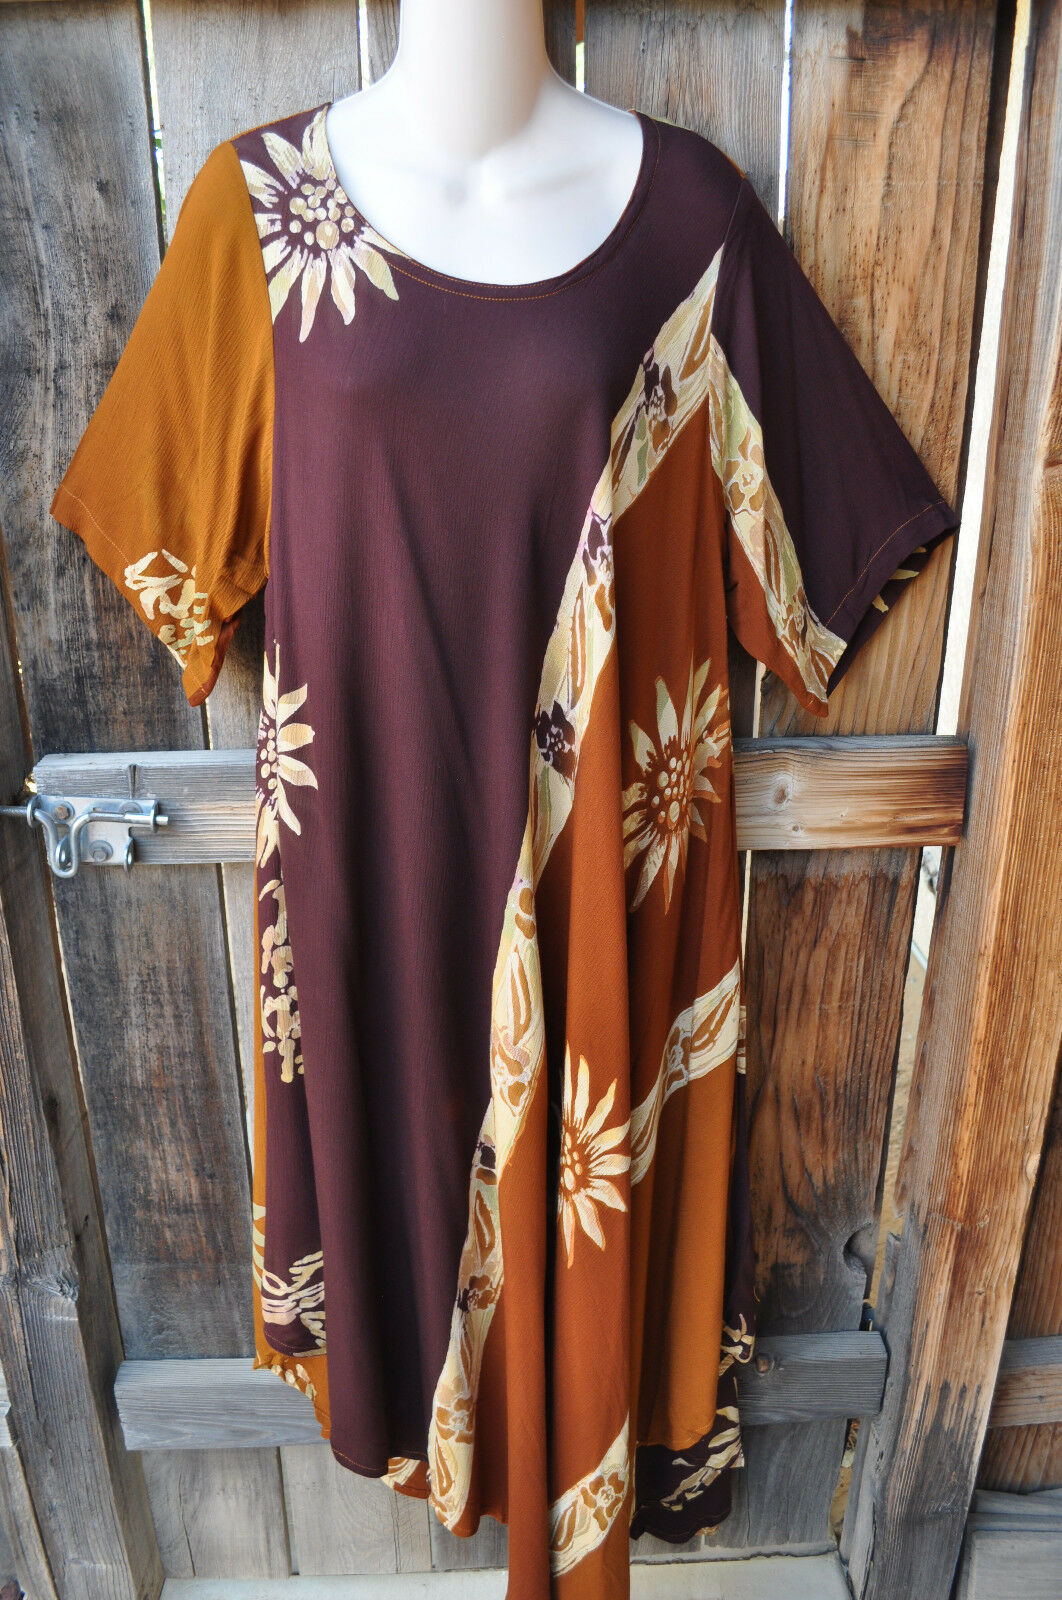 ART TO WEAR LAGENLOOK MADRAS TUNIC DRESS IN COPPER CANYON BY MISSION CANYON, 50B